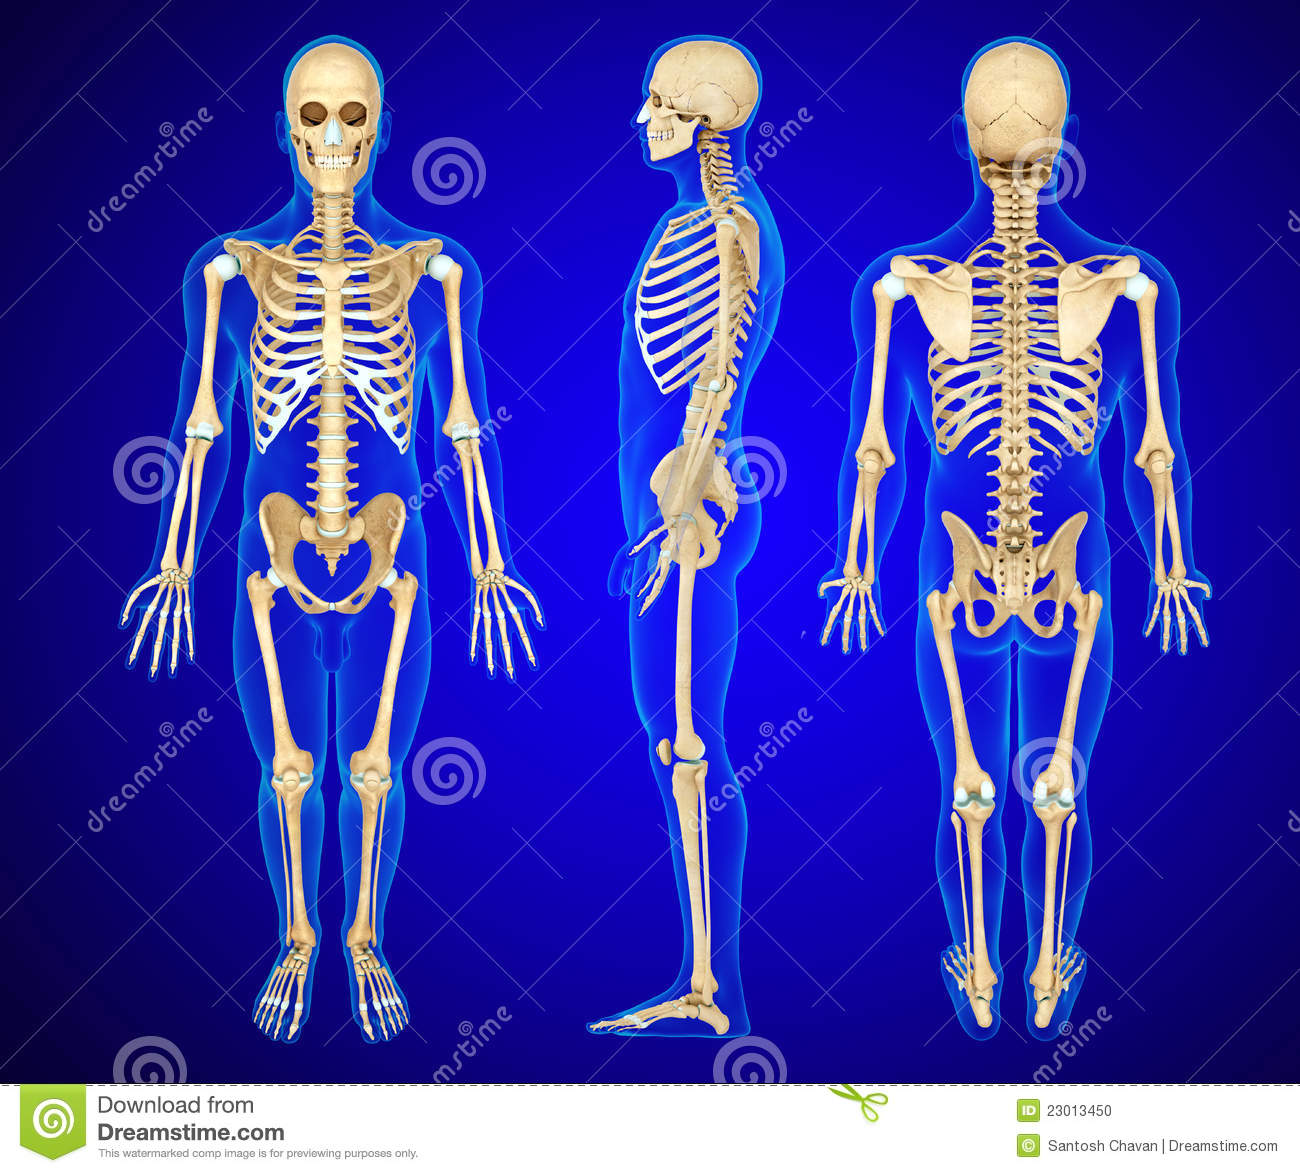 Stock Photo: Anatomy illustration of a human skeleton. Image: 23013450